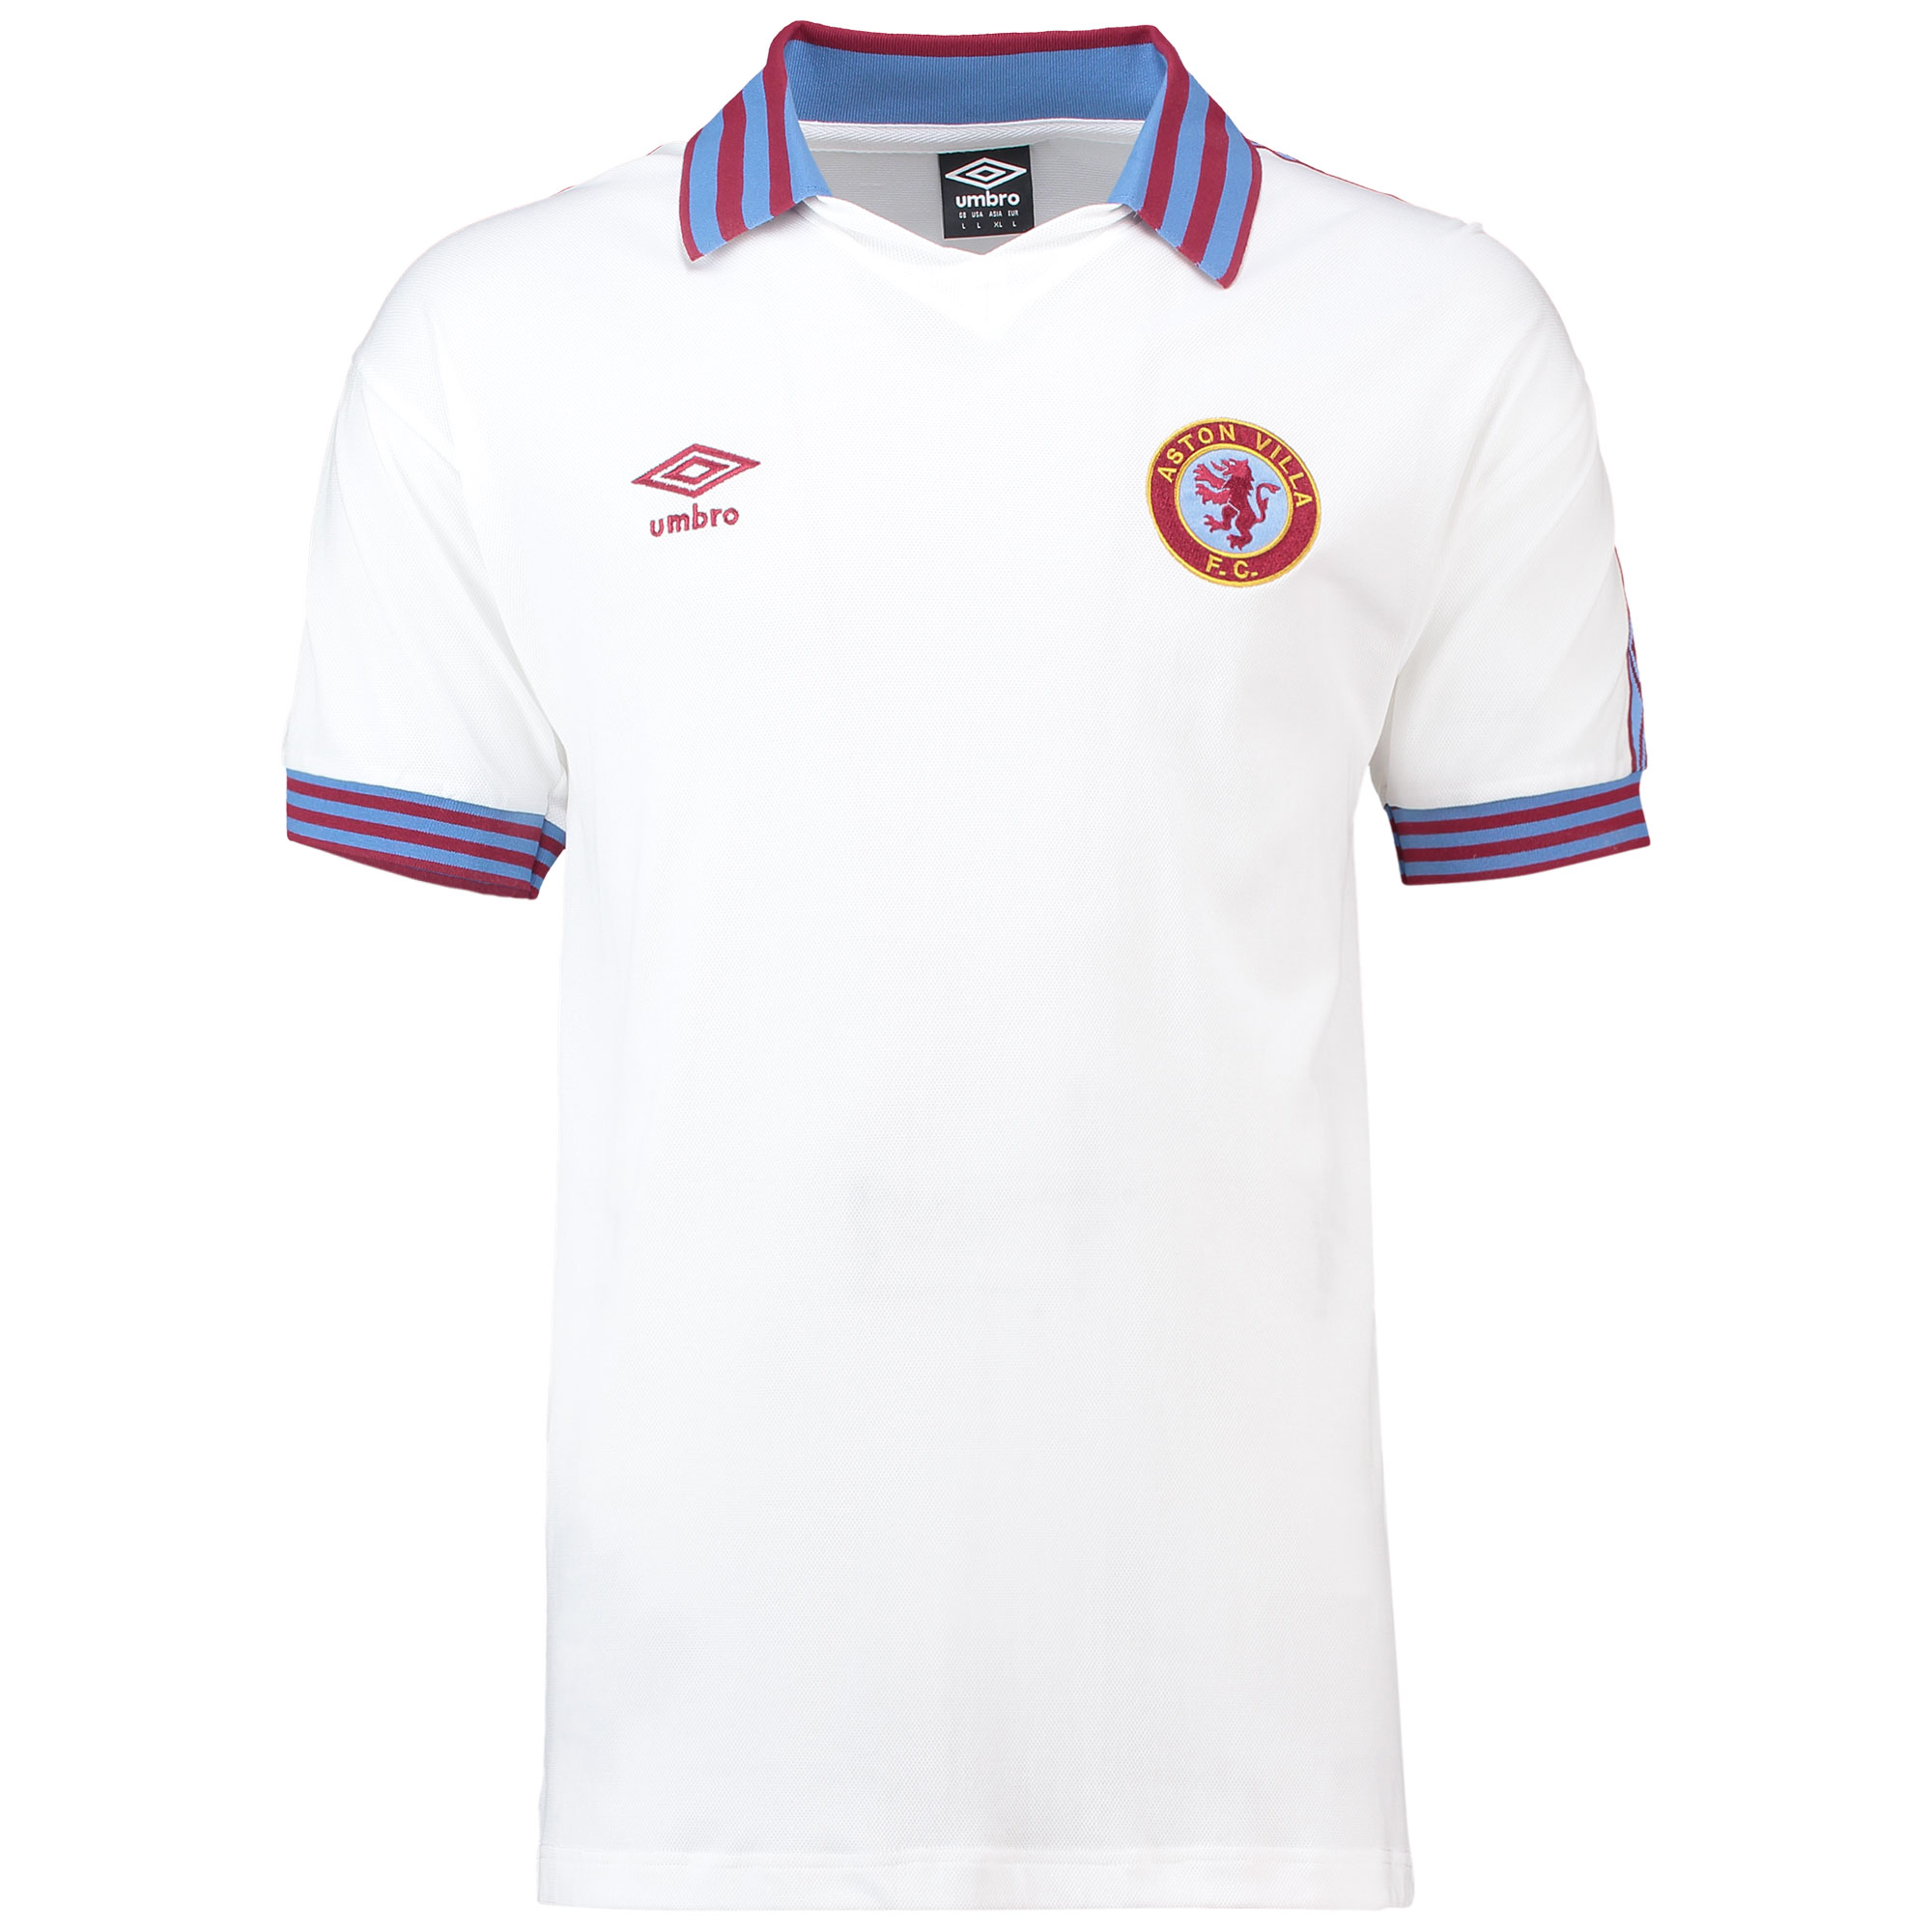 102a8c768 Umbro Retro England Football Shirts